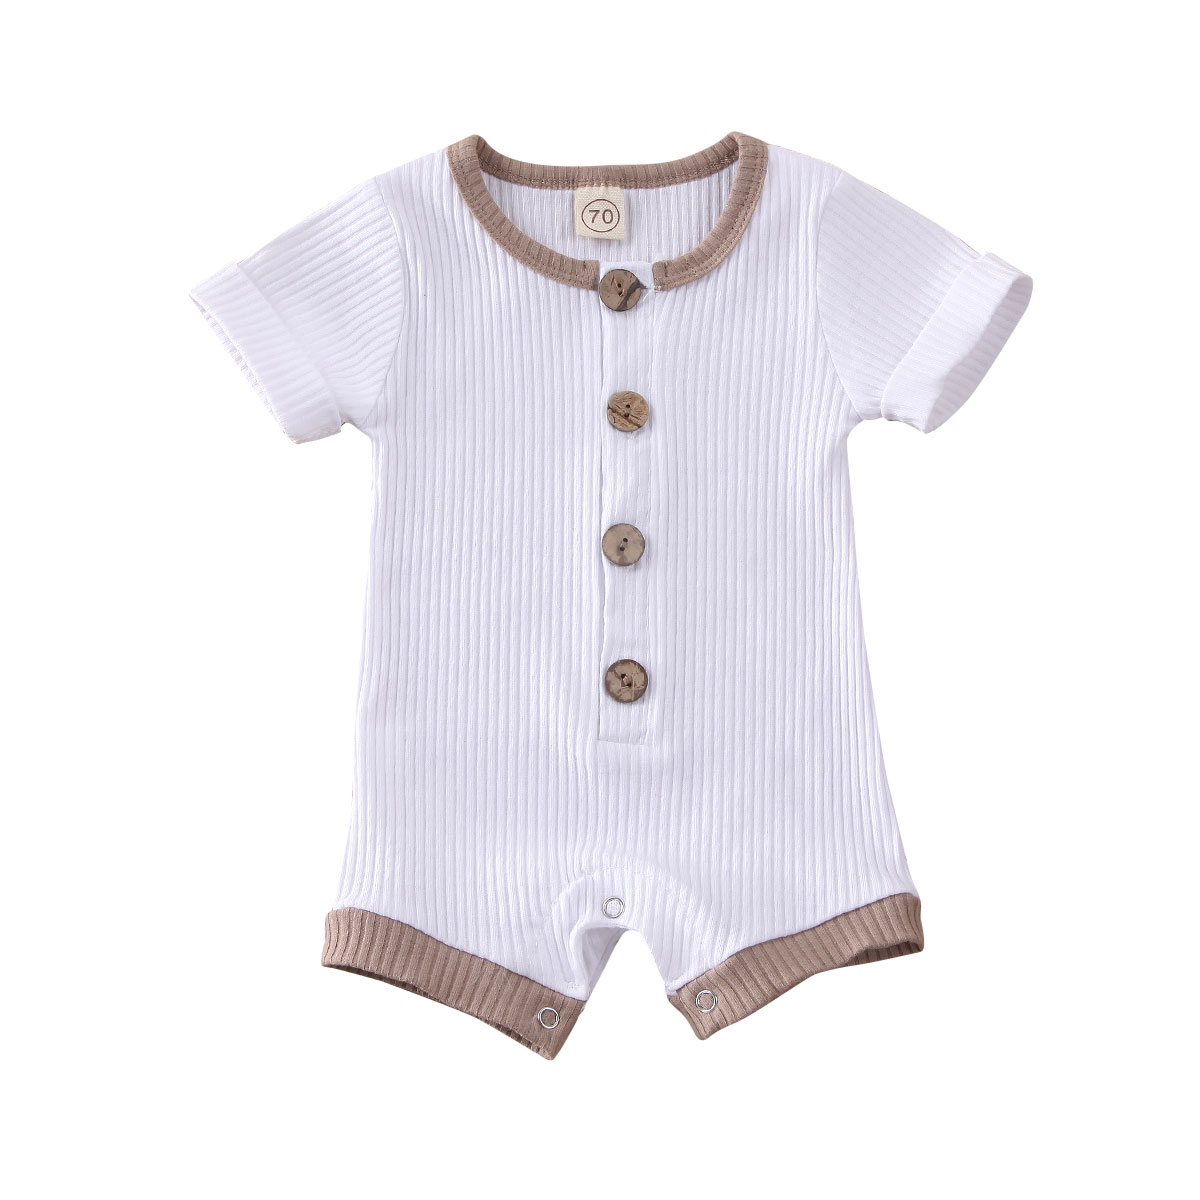 0-18M Kids Clothes 2021 Newborn Infant Baby Summer Clothing Boys Girls Clothes Ribbed Solid Romper Jumpsuit Short Sleeve Outfit